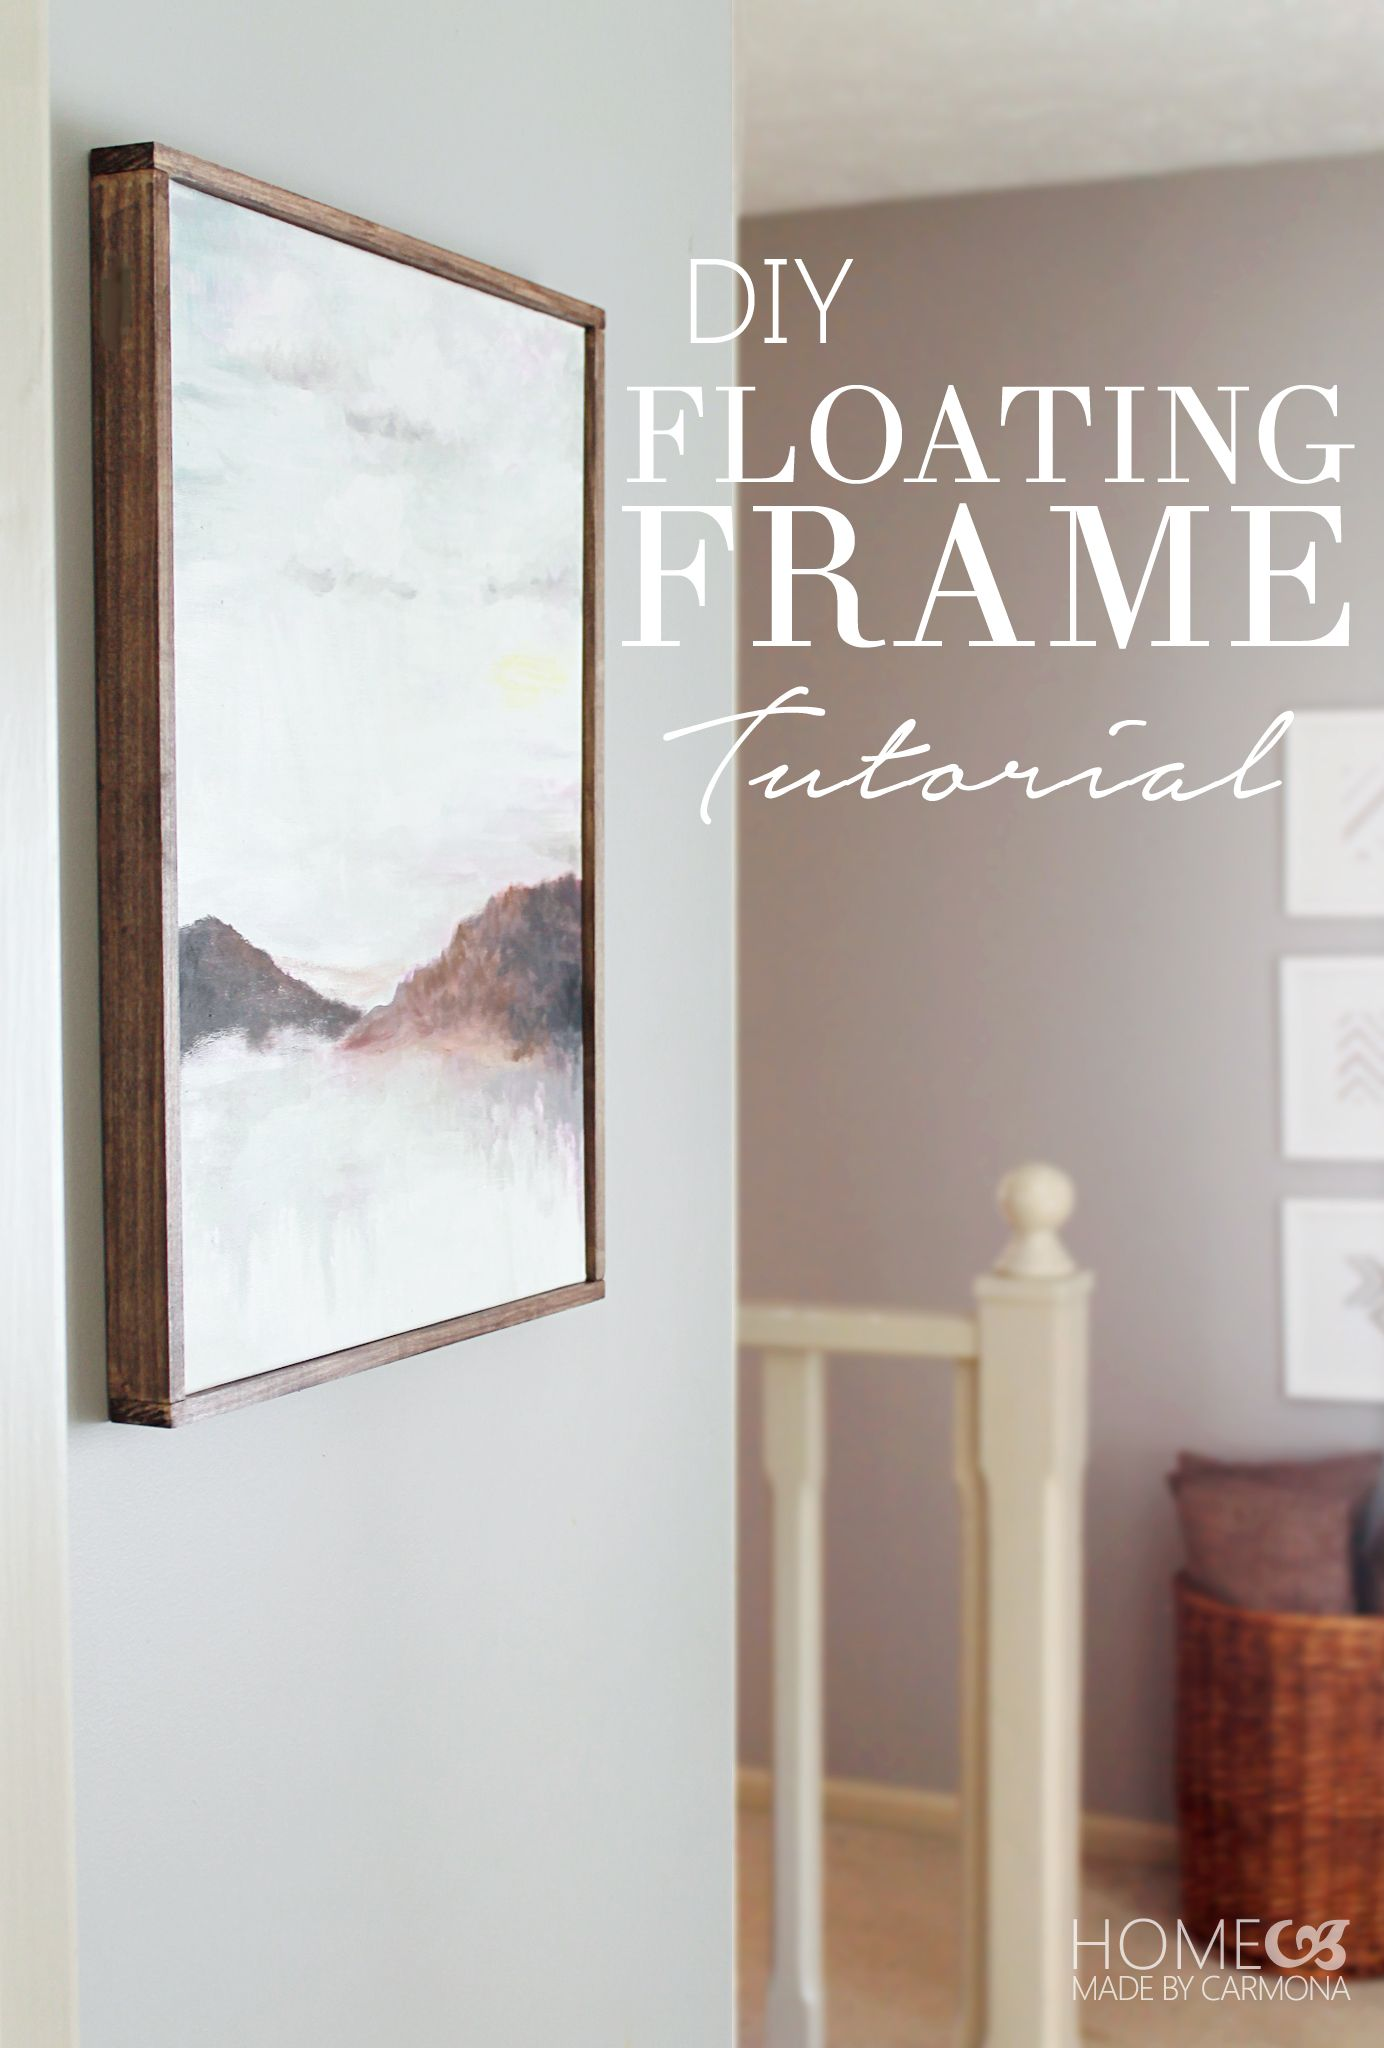 DIY Floating Frame Tutorial | Home Made by Carmona blog | Pinterest ...